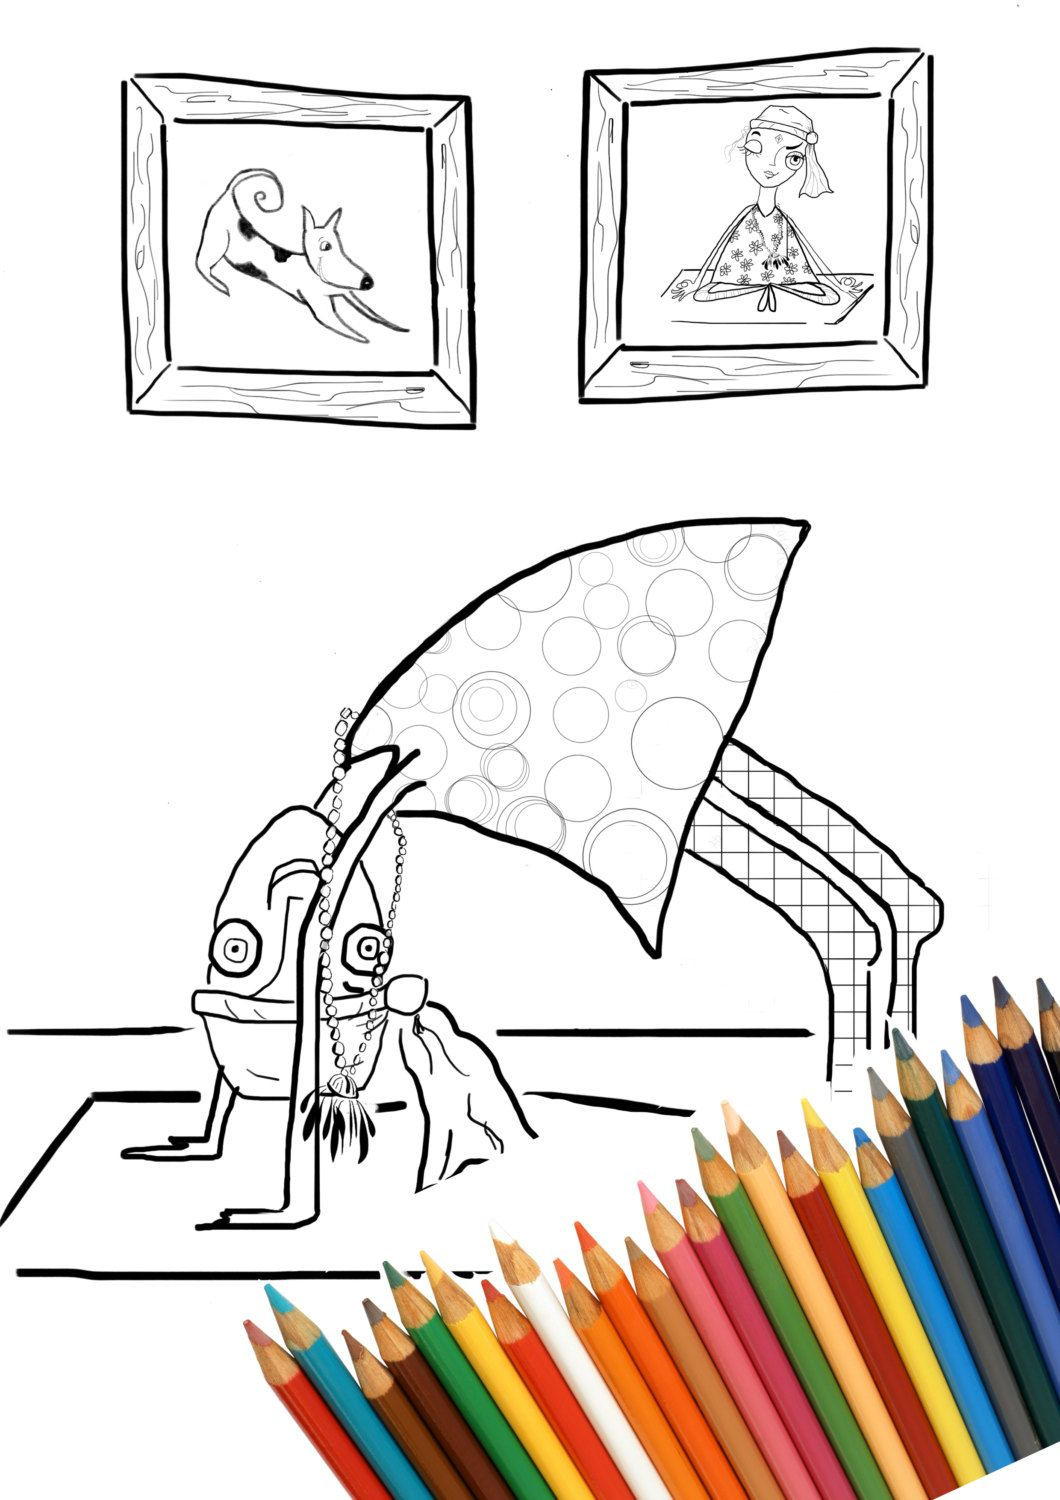 Anti stress colouring book asda - Yoga Wheel Coloring Page Adult Coloring Page Digital Printable Page Whimsical Coloring Page Funny Stationary